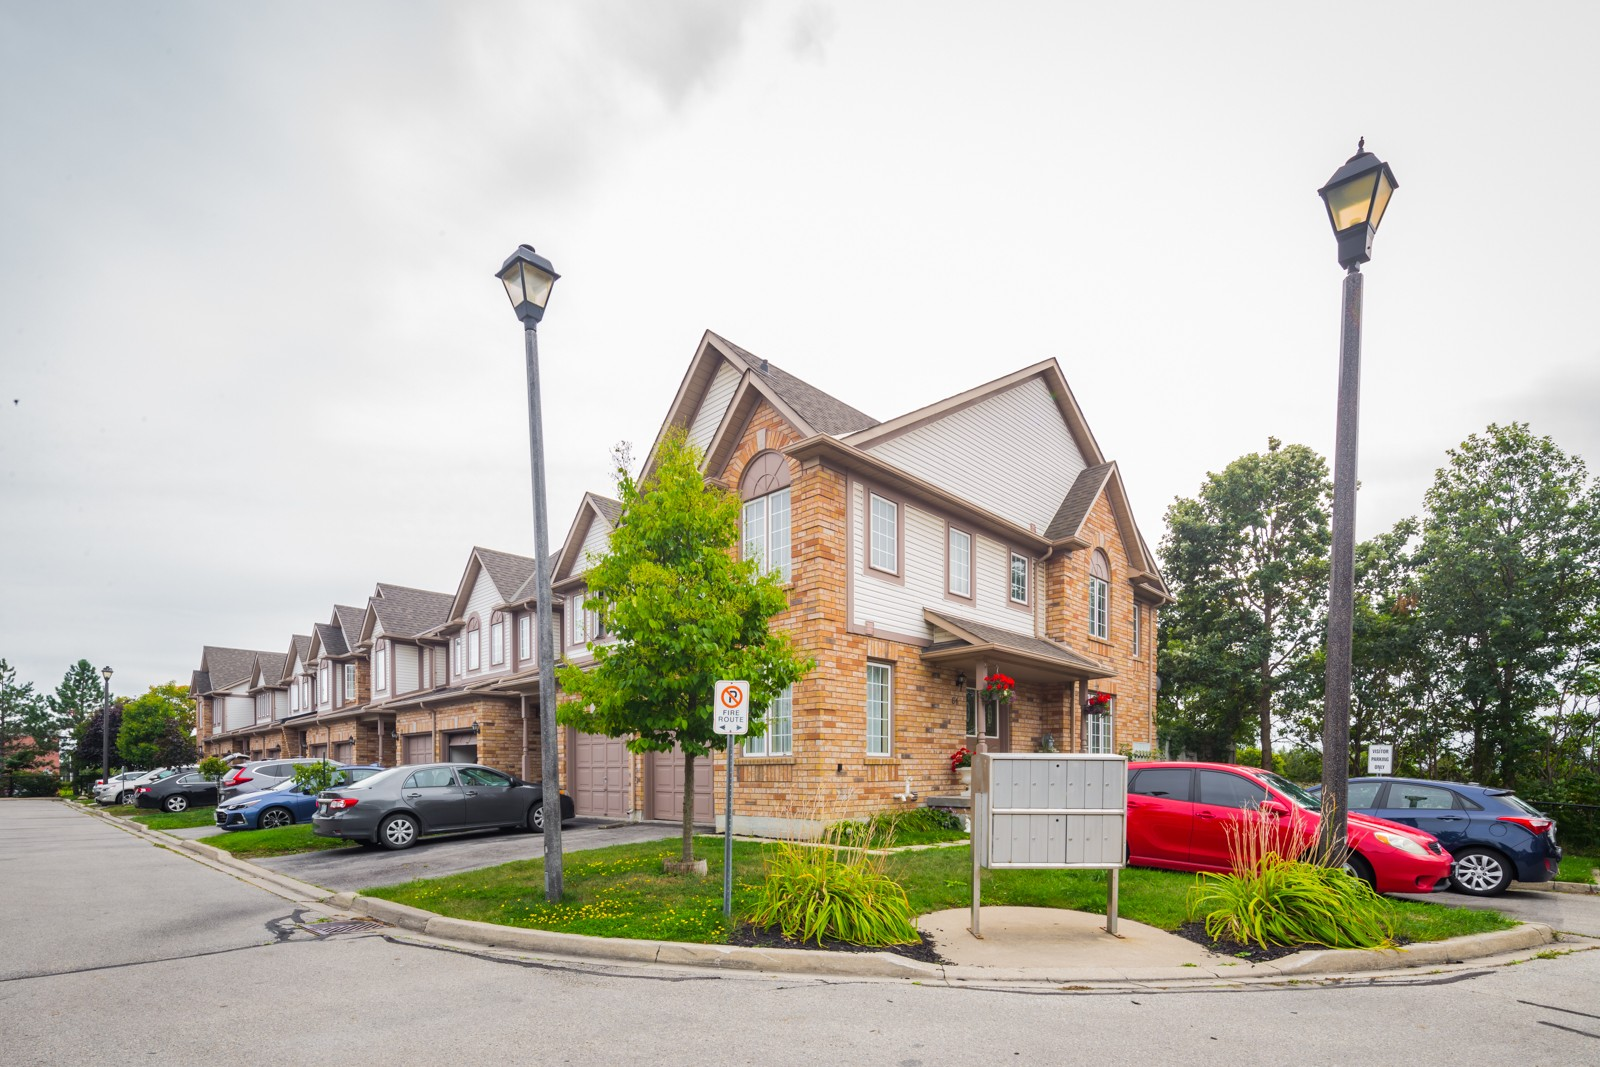 45 Alderbrook Place Townhouses at 31 Alderbrook Pl, Caledon 0